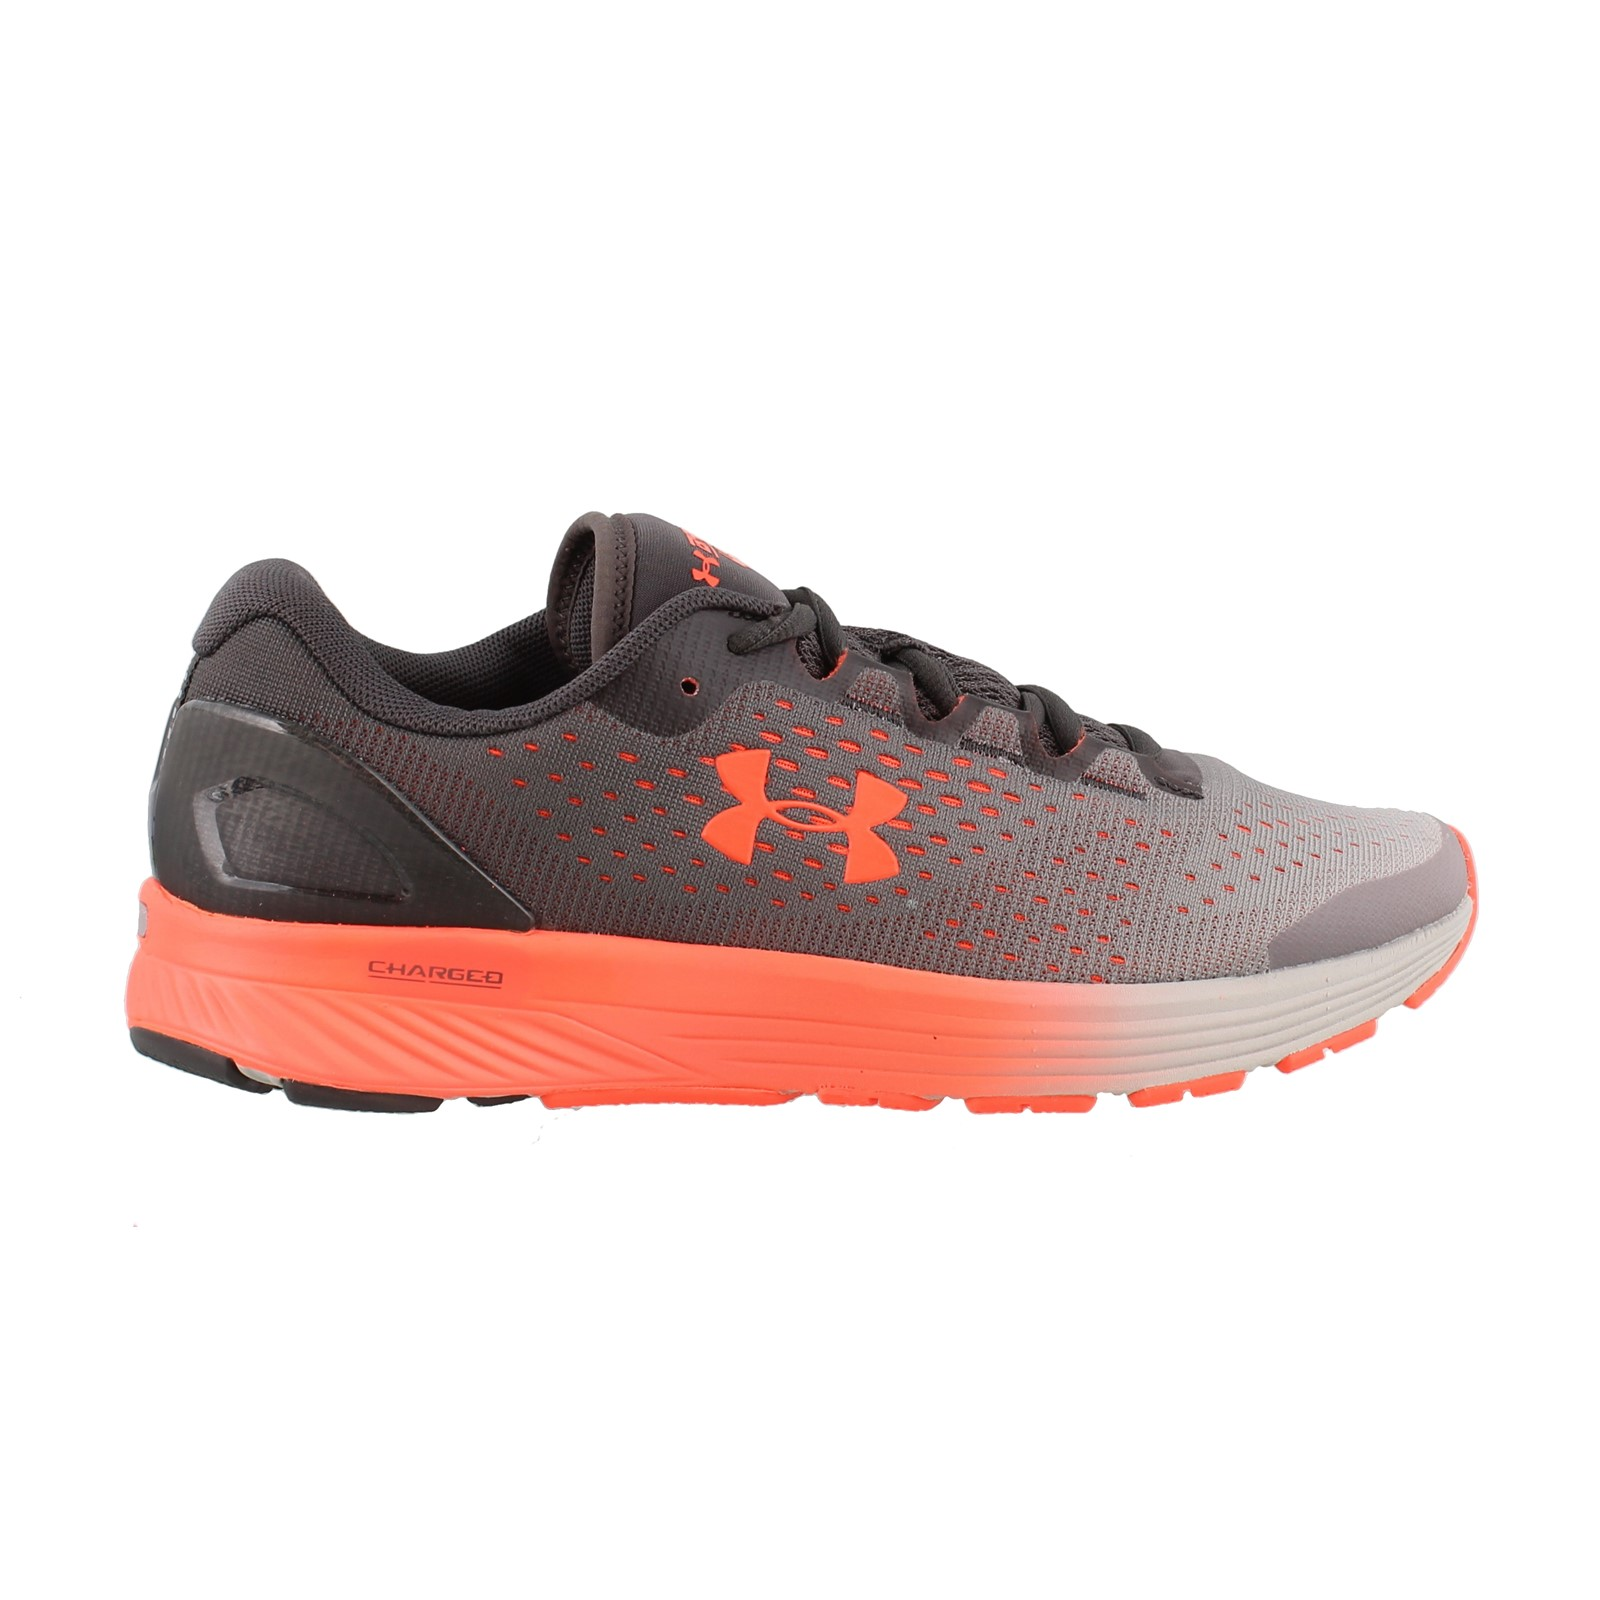 Women's Under Armour, Charged Bandit 4 Running Sneakers